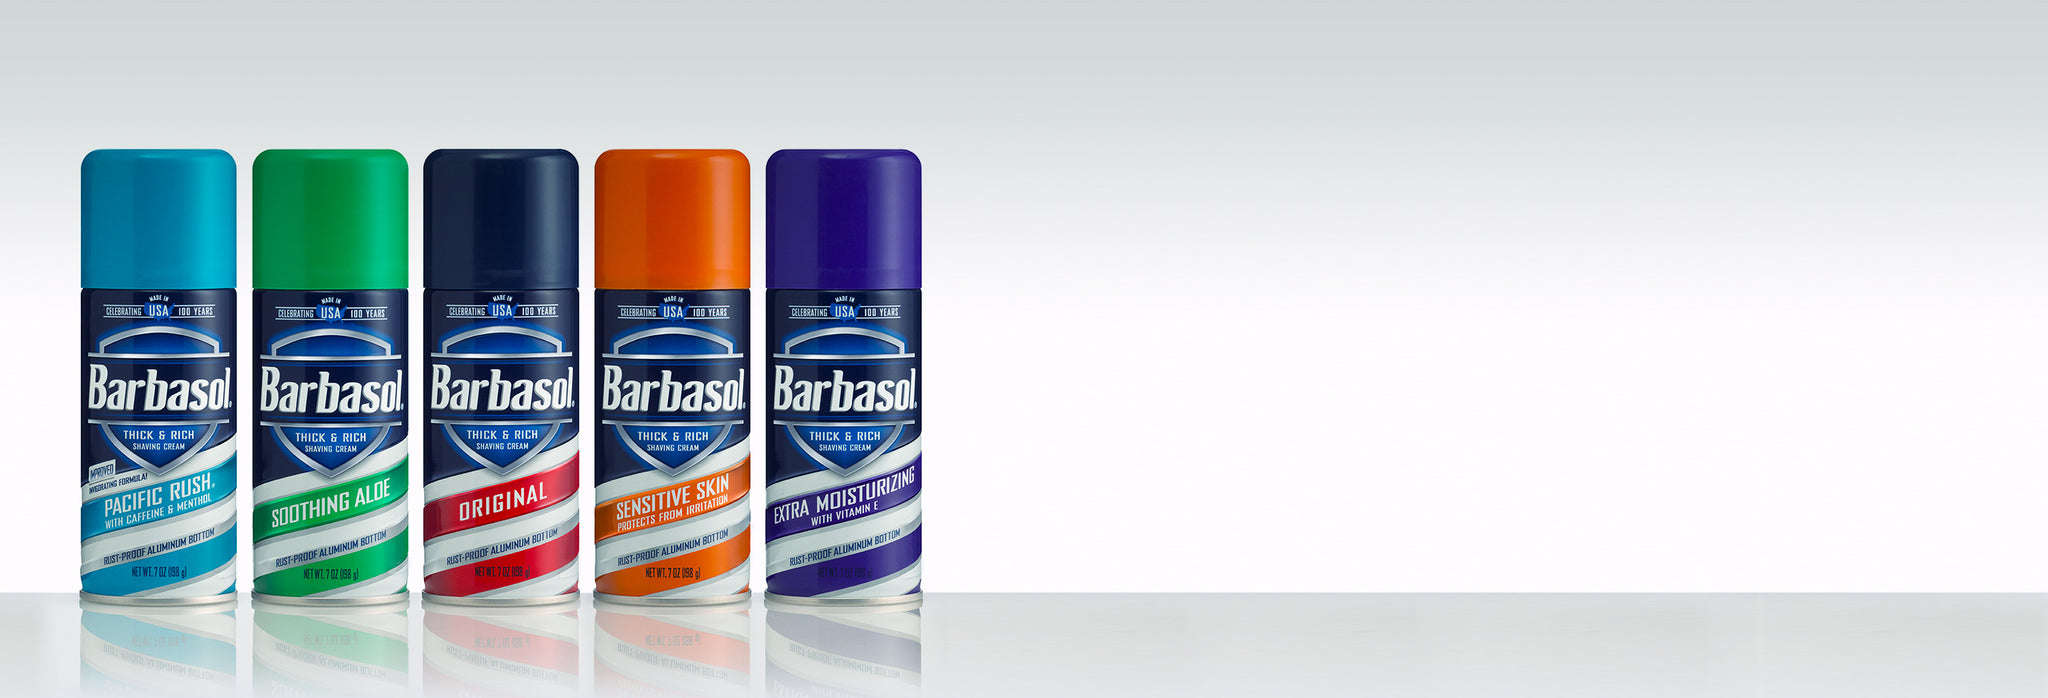 Barbasol | Shaving Razors, Creams and Shave Club for Men